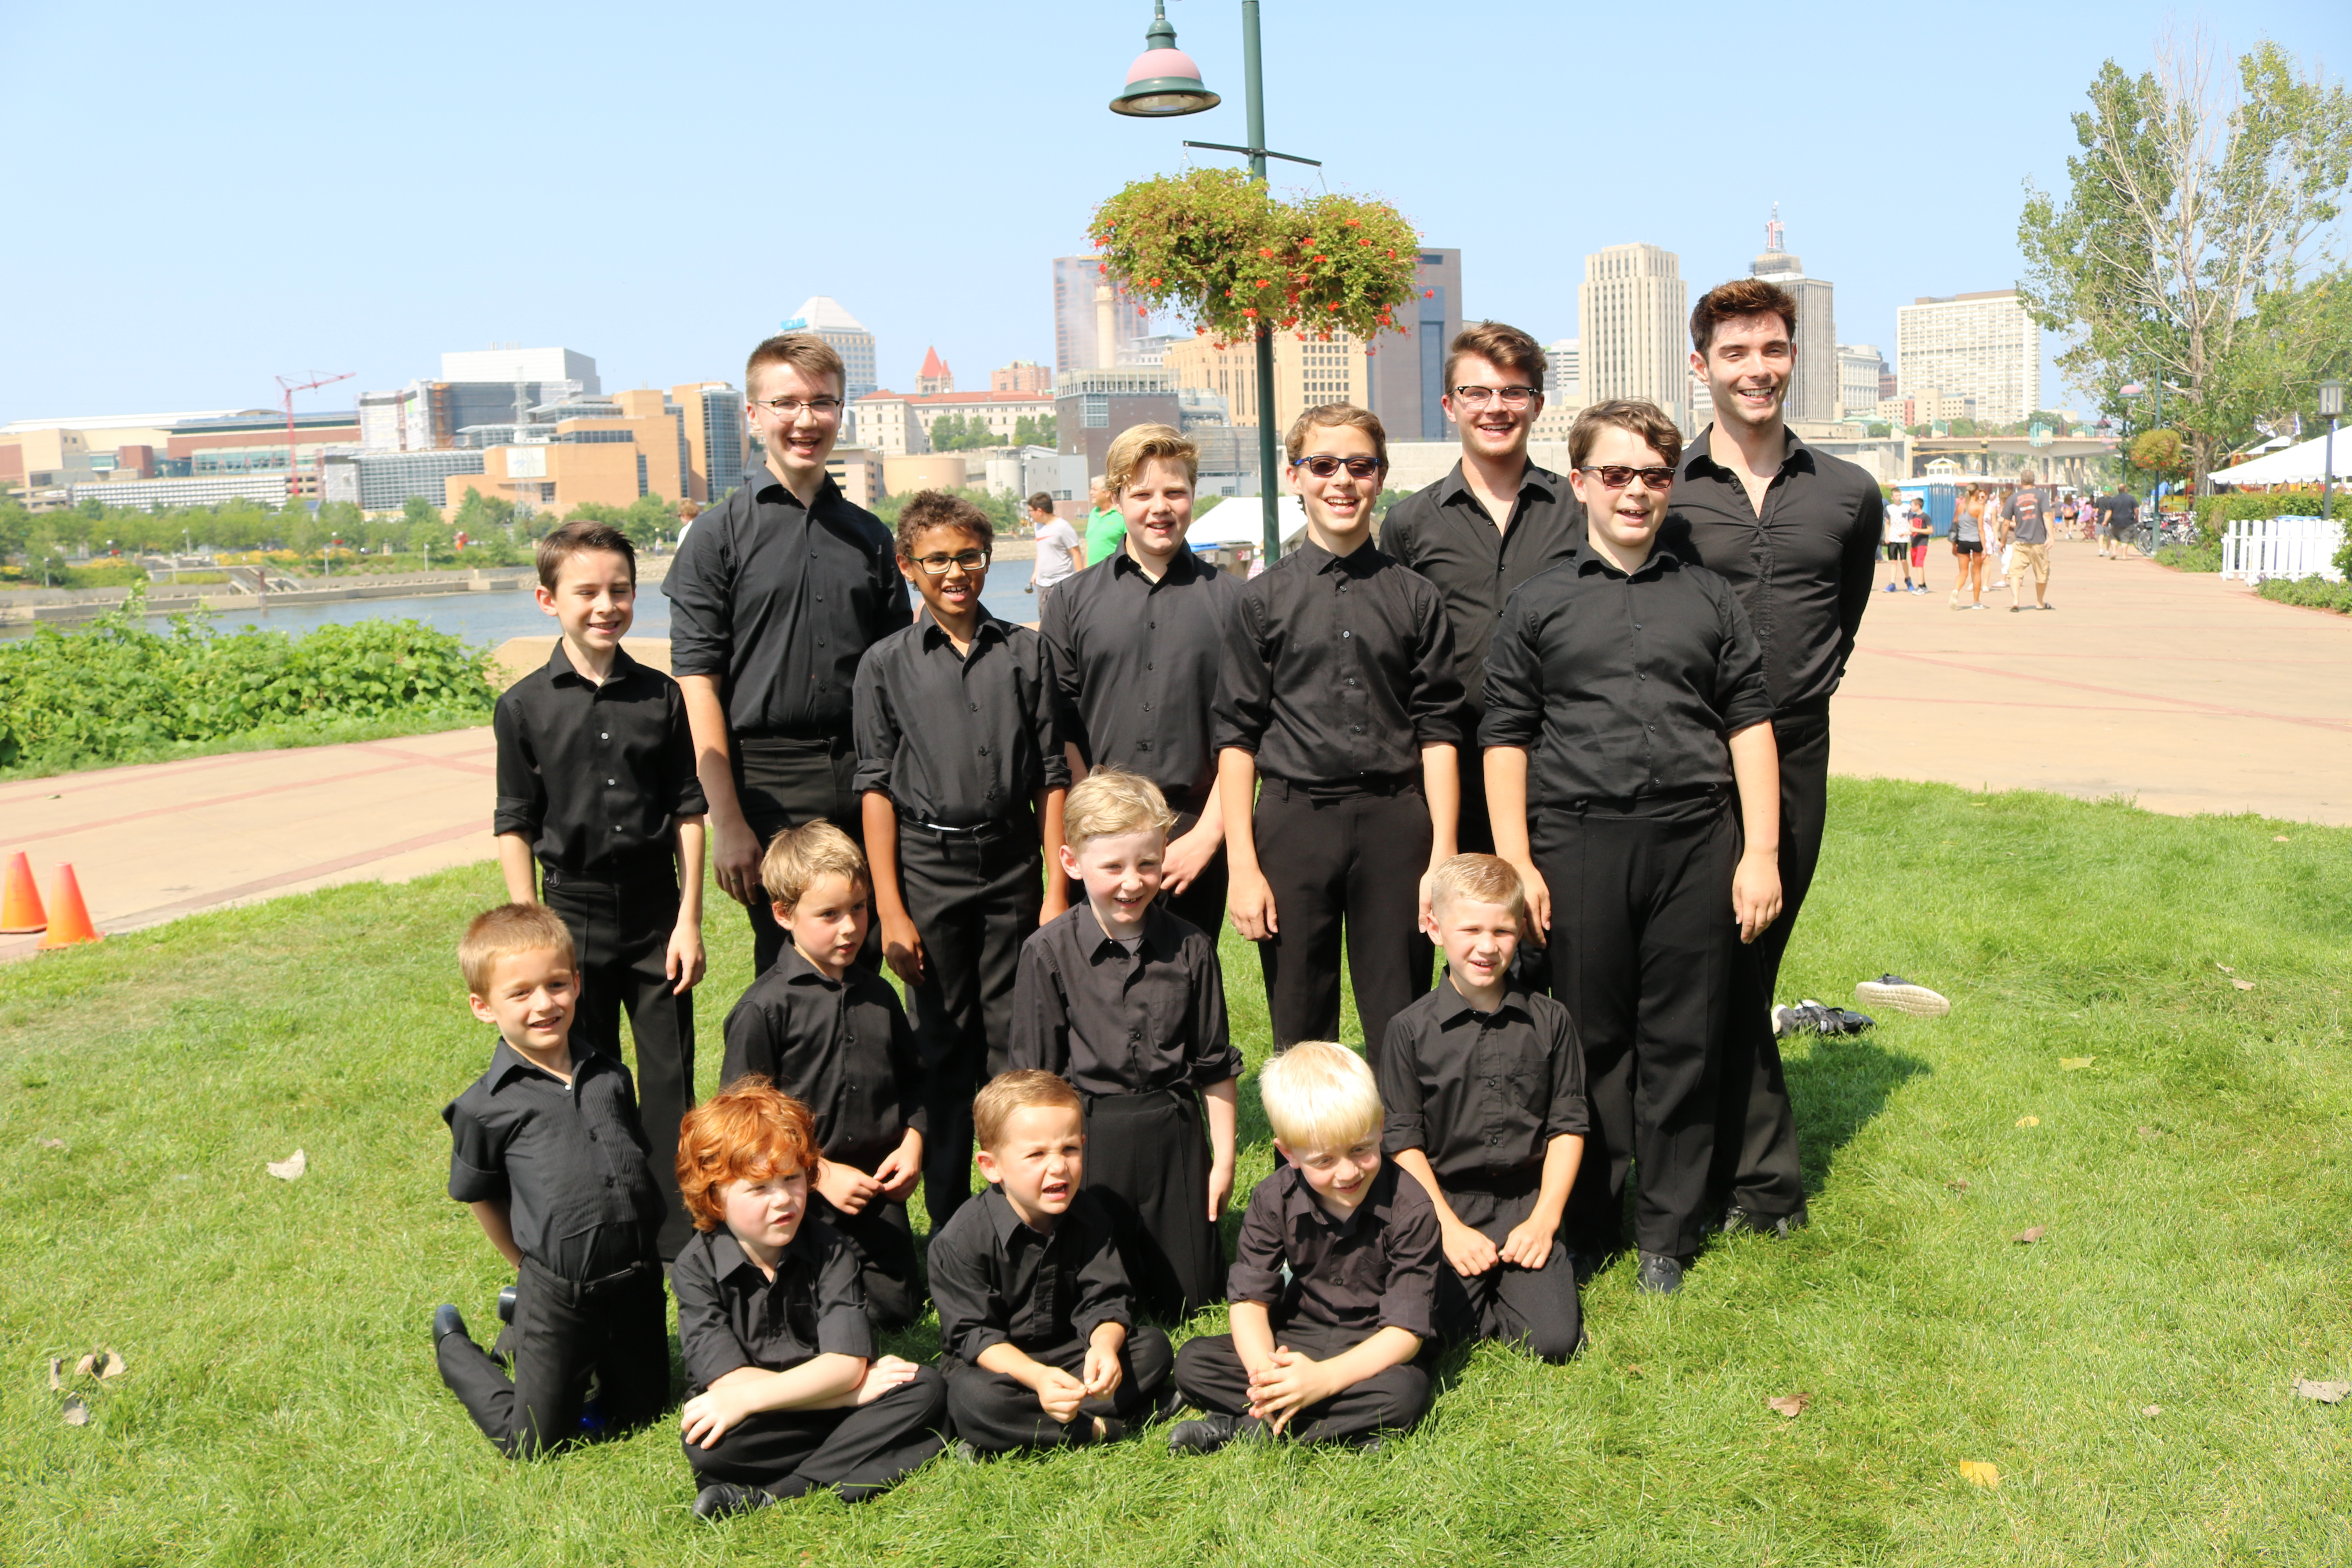 Group of boys and teenagers wearing black, standing in the grass in MN looking happy as a group.